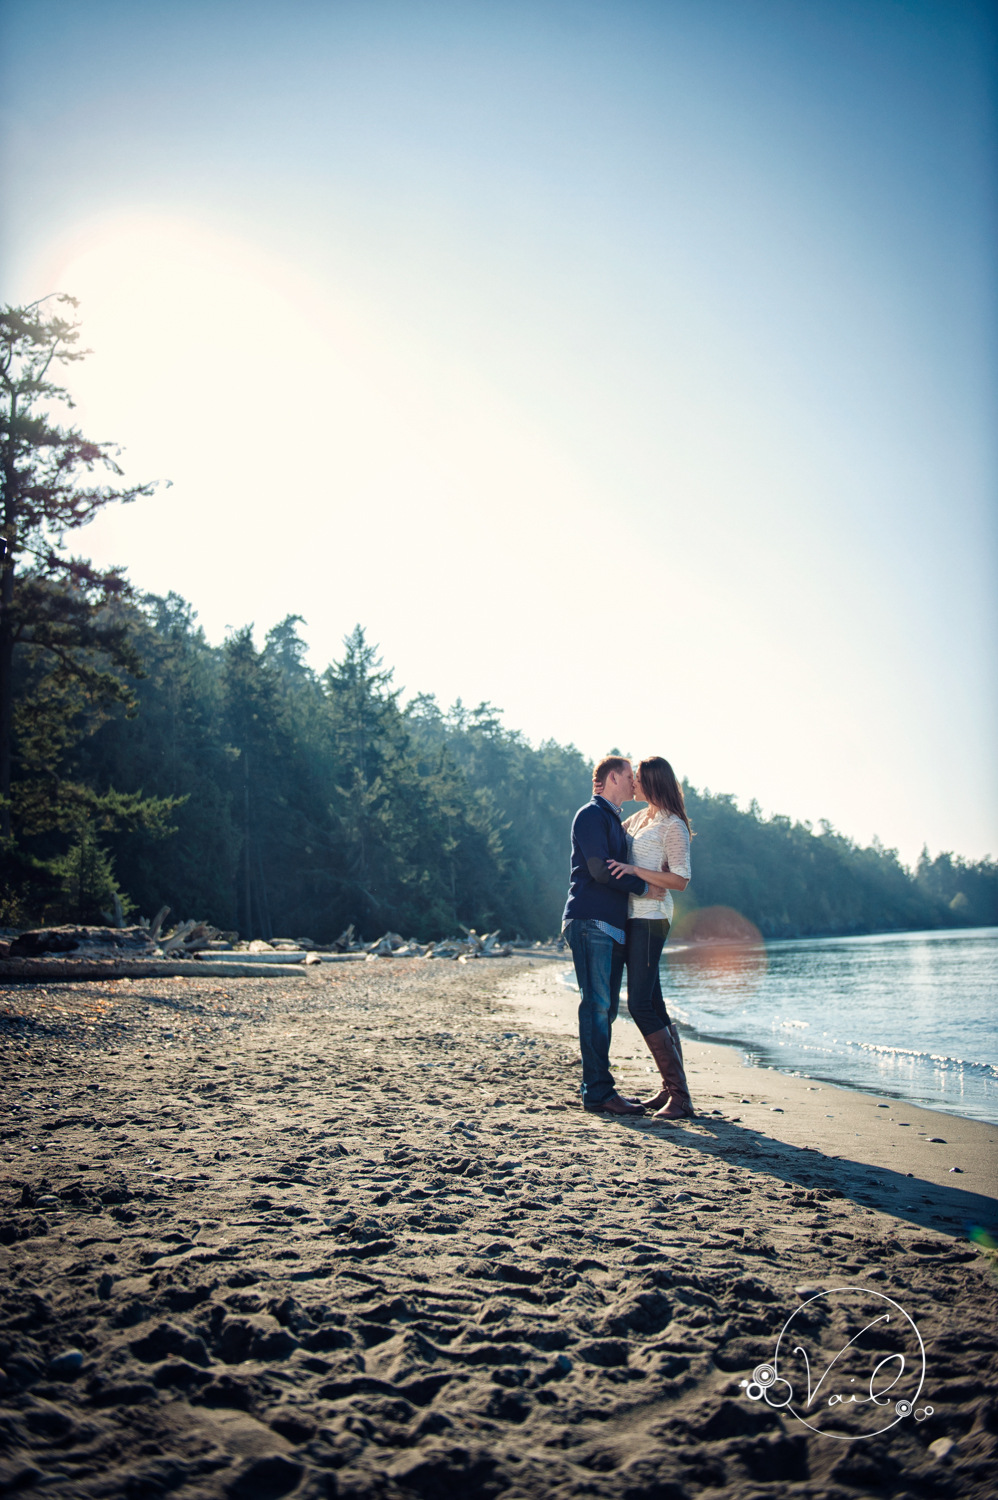 Whidbey Island engagement photography deception pass-13.jpg